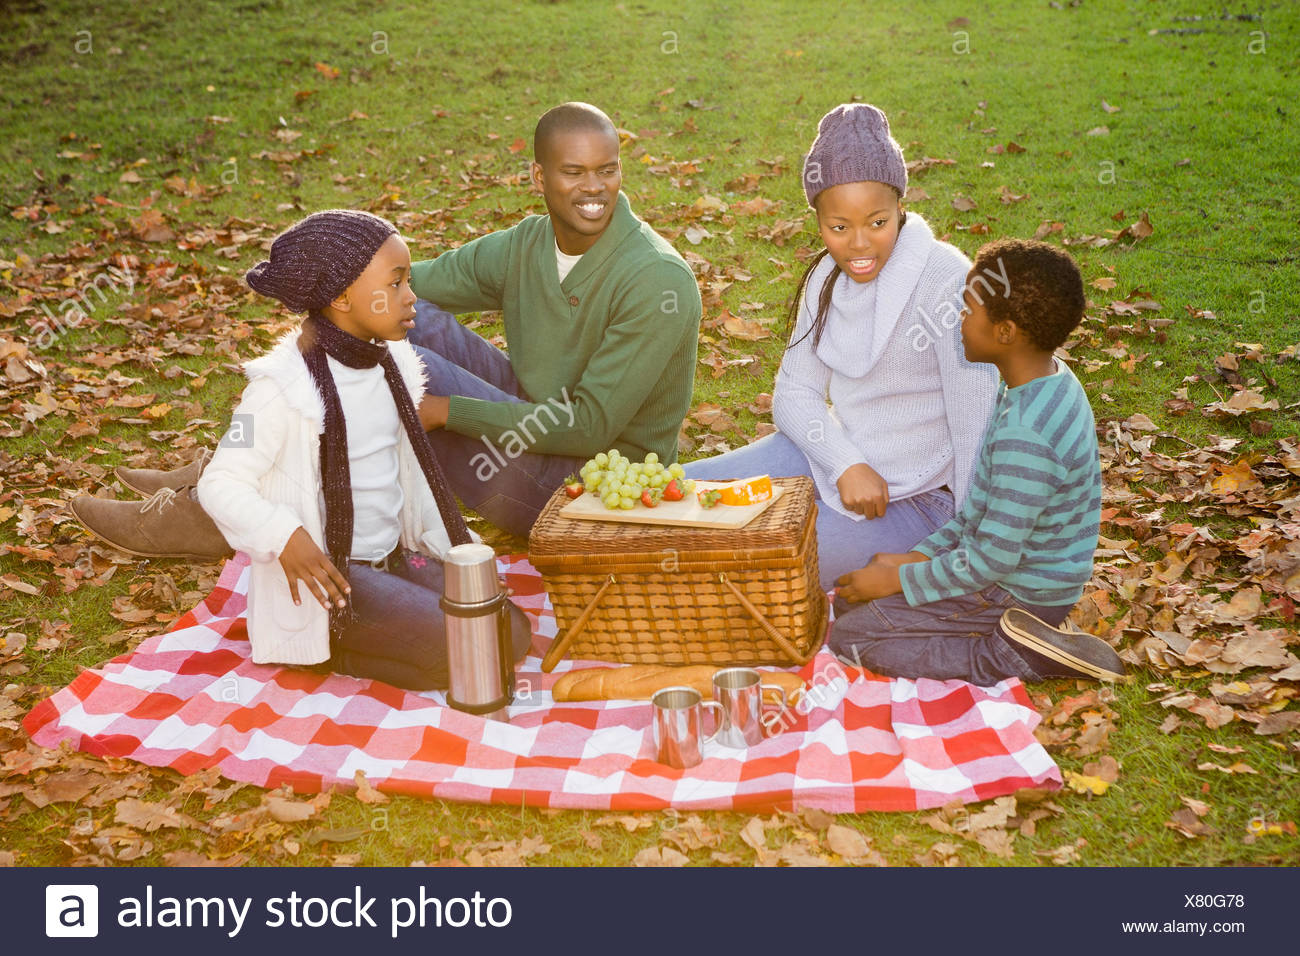 Happy family picnicking in the park together - Stock Image